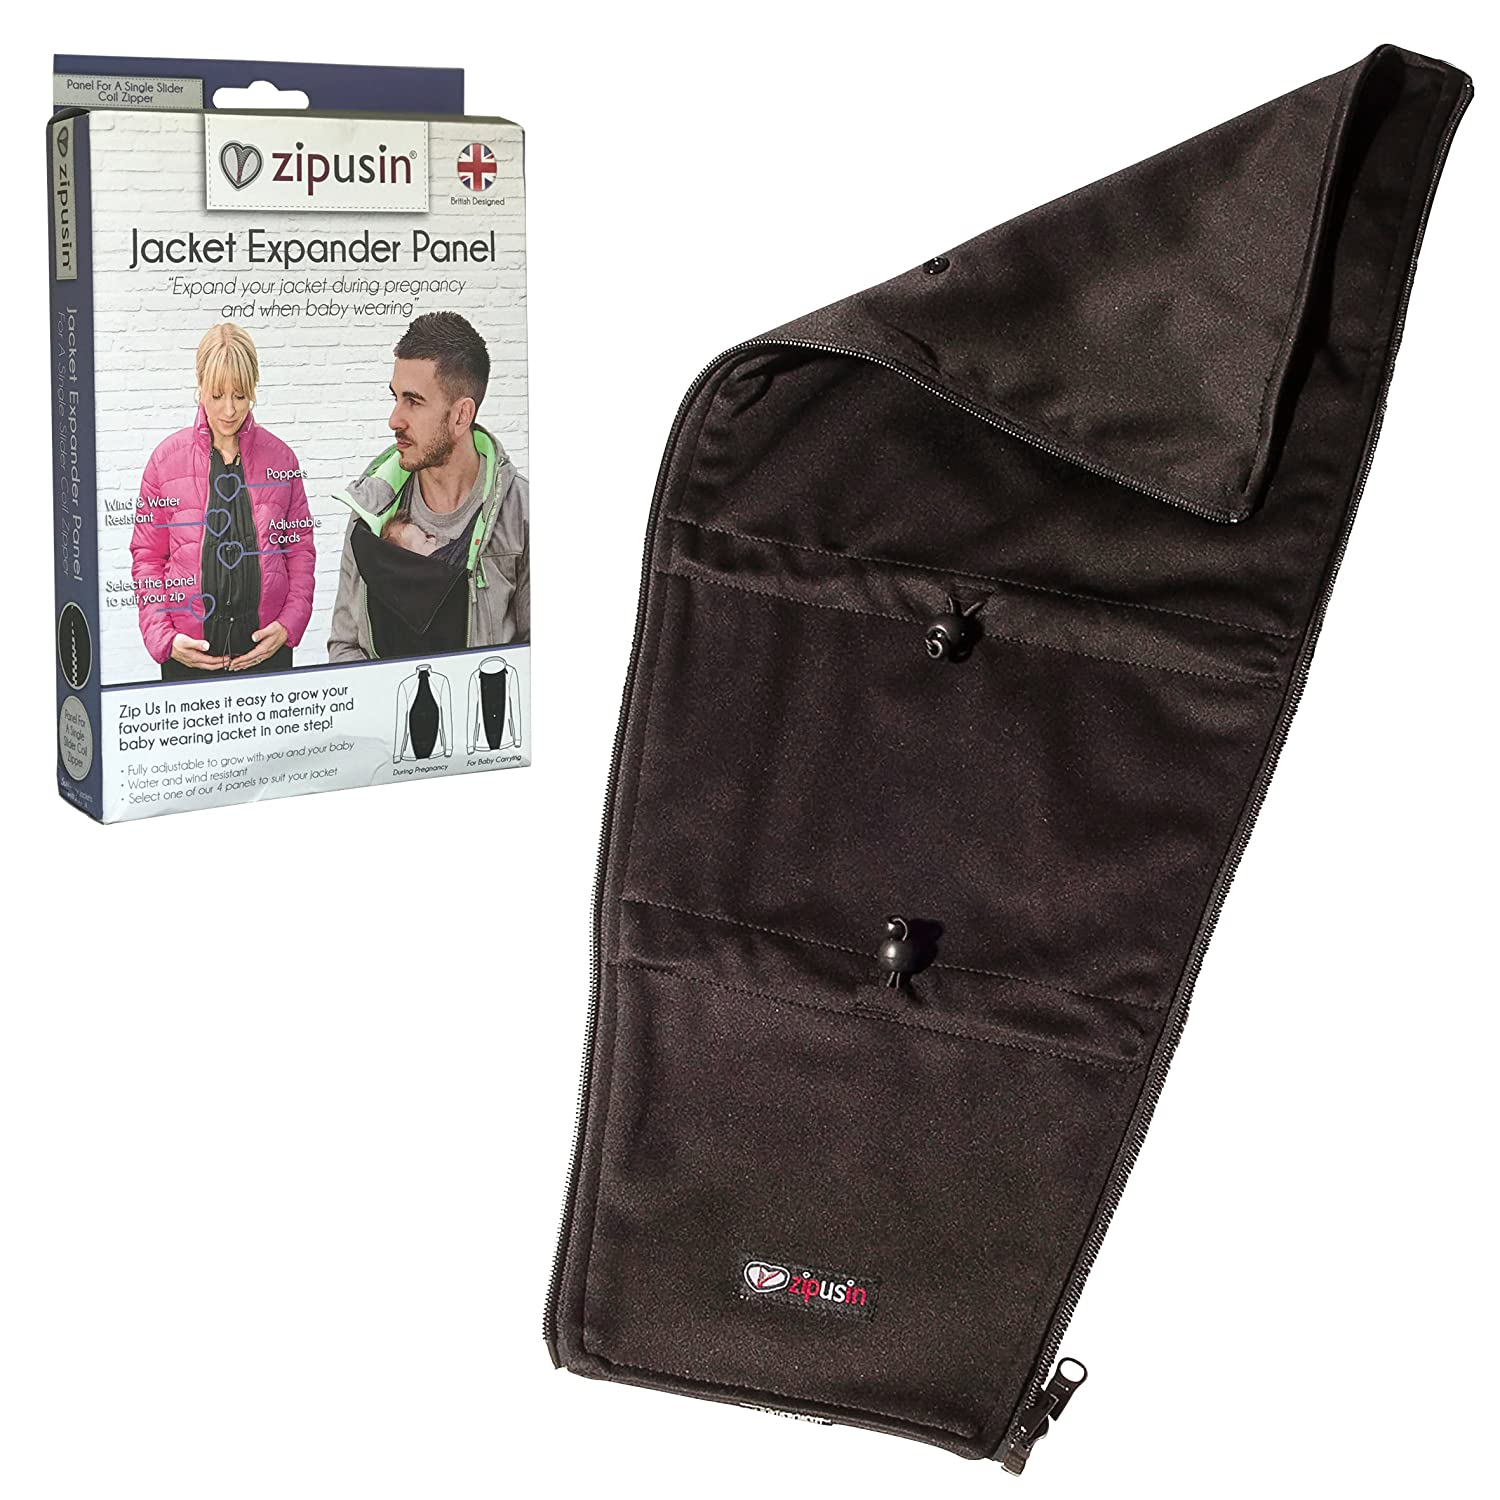 Zip Us In Jacket Expander Panel - Turn Your own Jacket into a Maternity Jacket